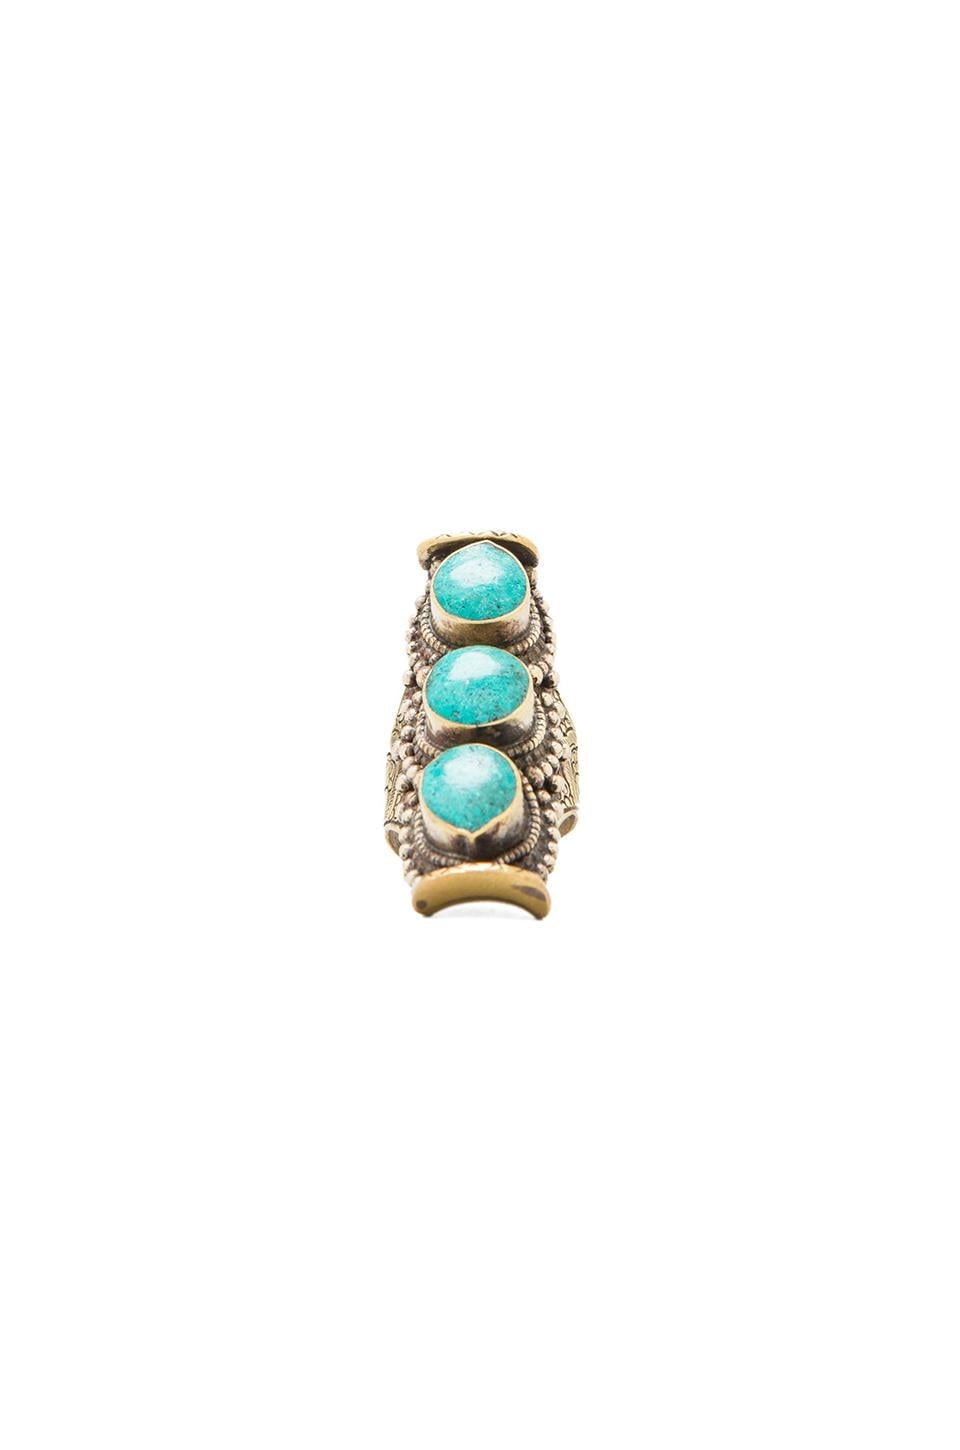 Natalie B Jewelry Natalie B 3 Stone Ring in Turquoise